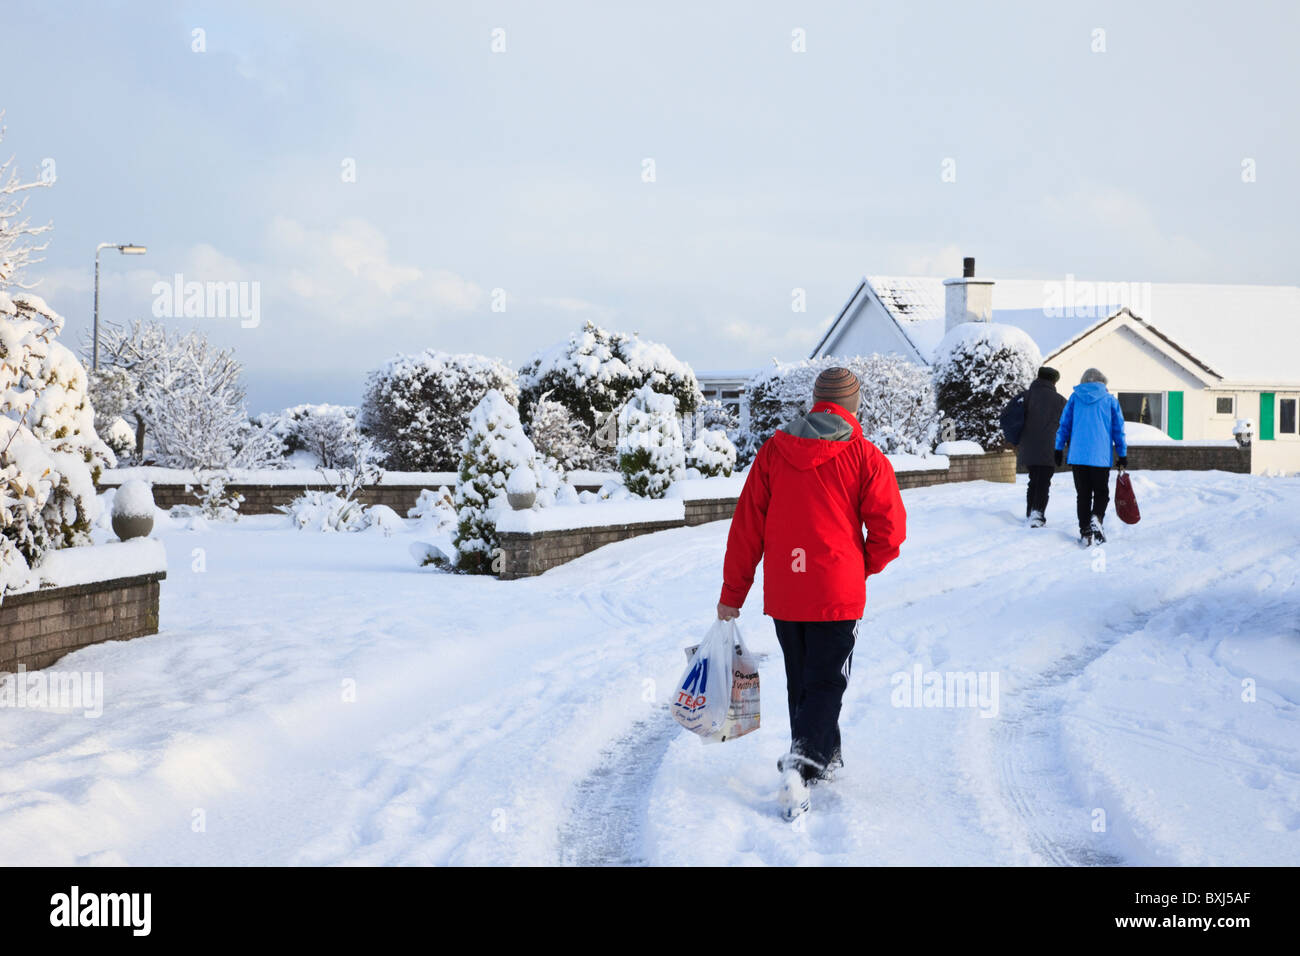 Snow scene with people carrying shopping along residential street on a cold winter's day after heavy snowfall - Stock Image